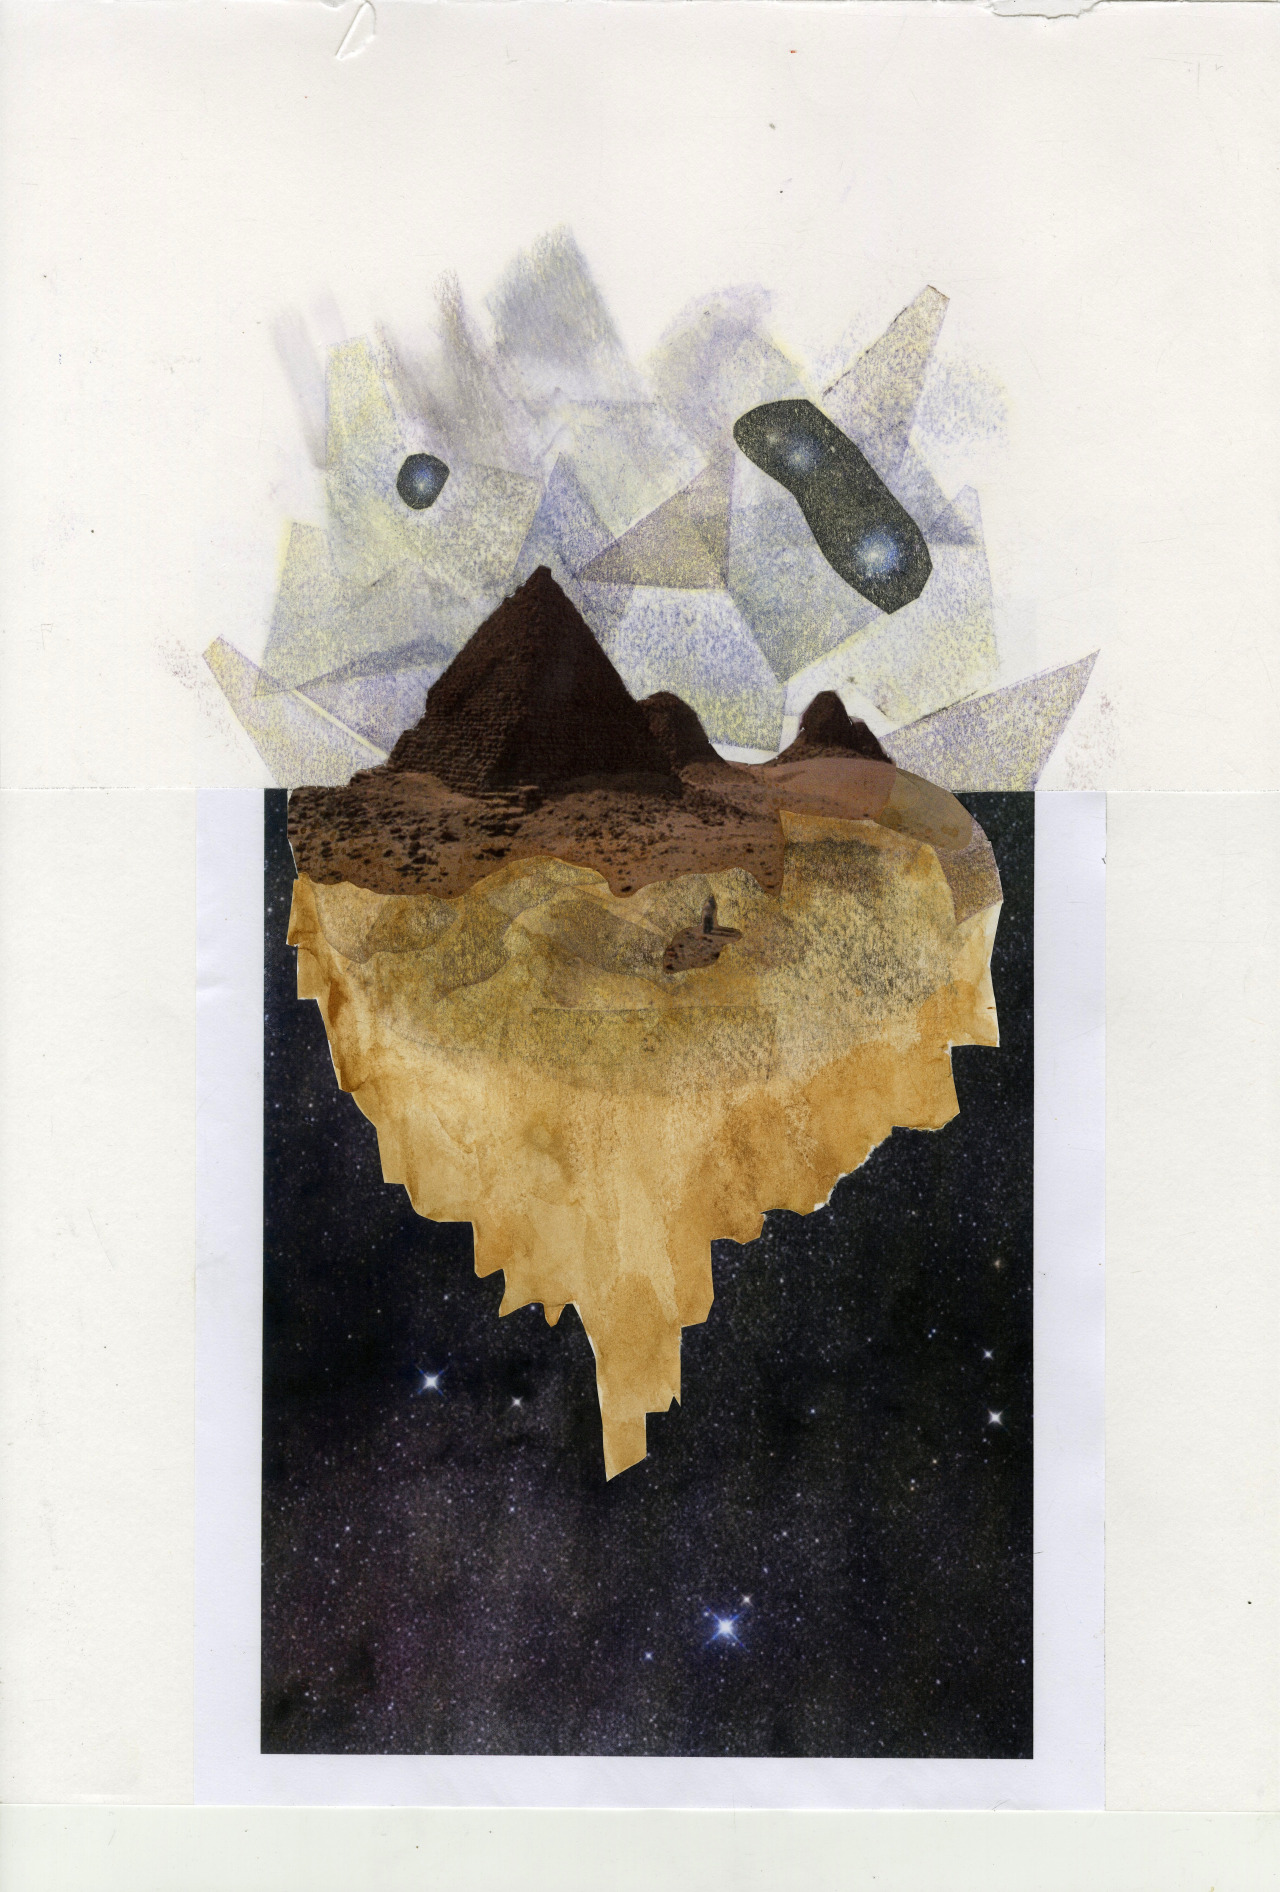 eatsleepdraw:  Pyramids 2013 My visual journal: louisodendaal.tumblr.com